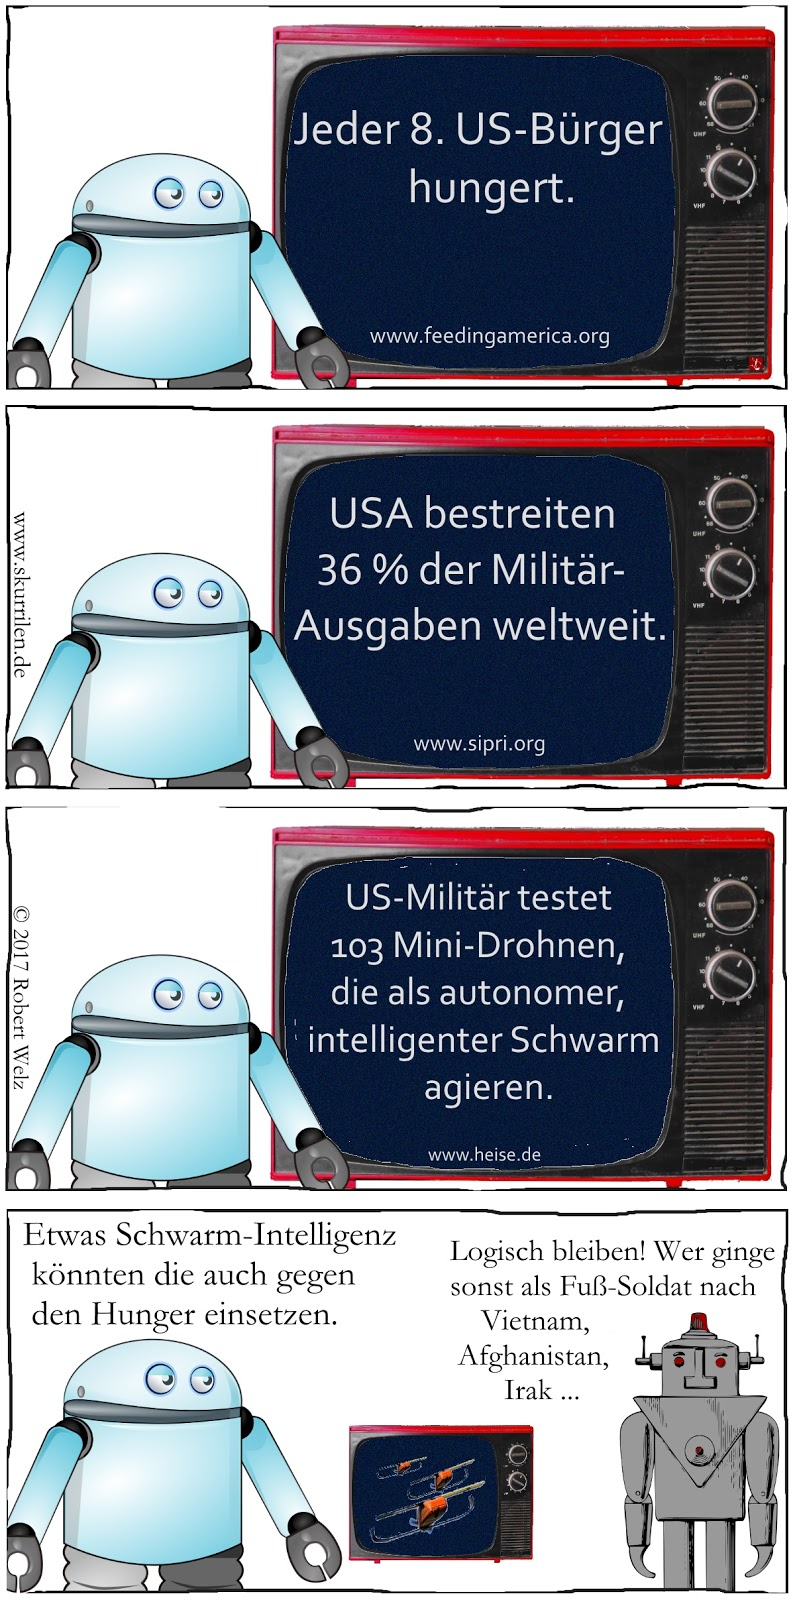 Hunger USA Militär Roboter Android intelligente Drohnen Schwarm-Intelligenz Satire Comic Collage